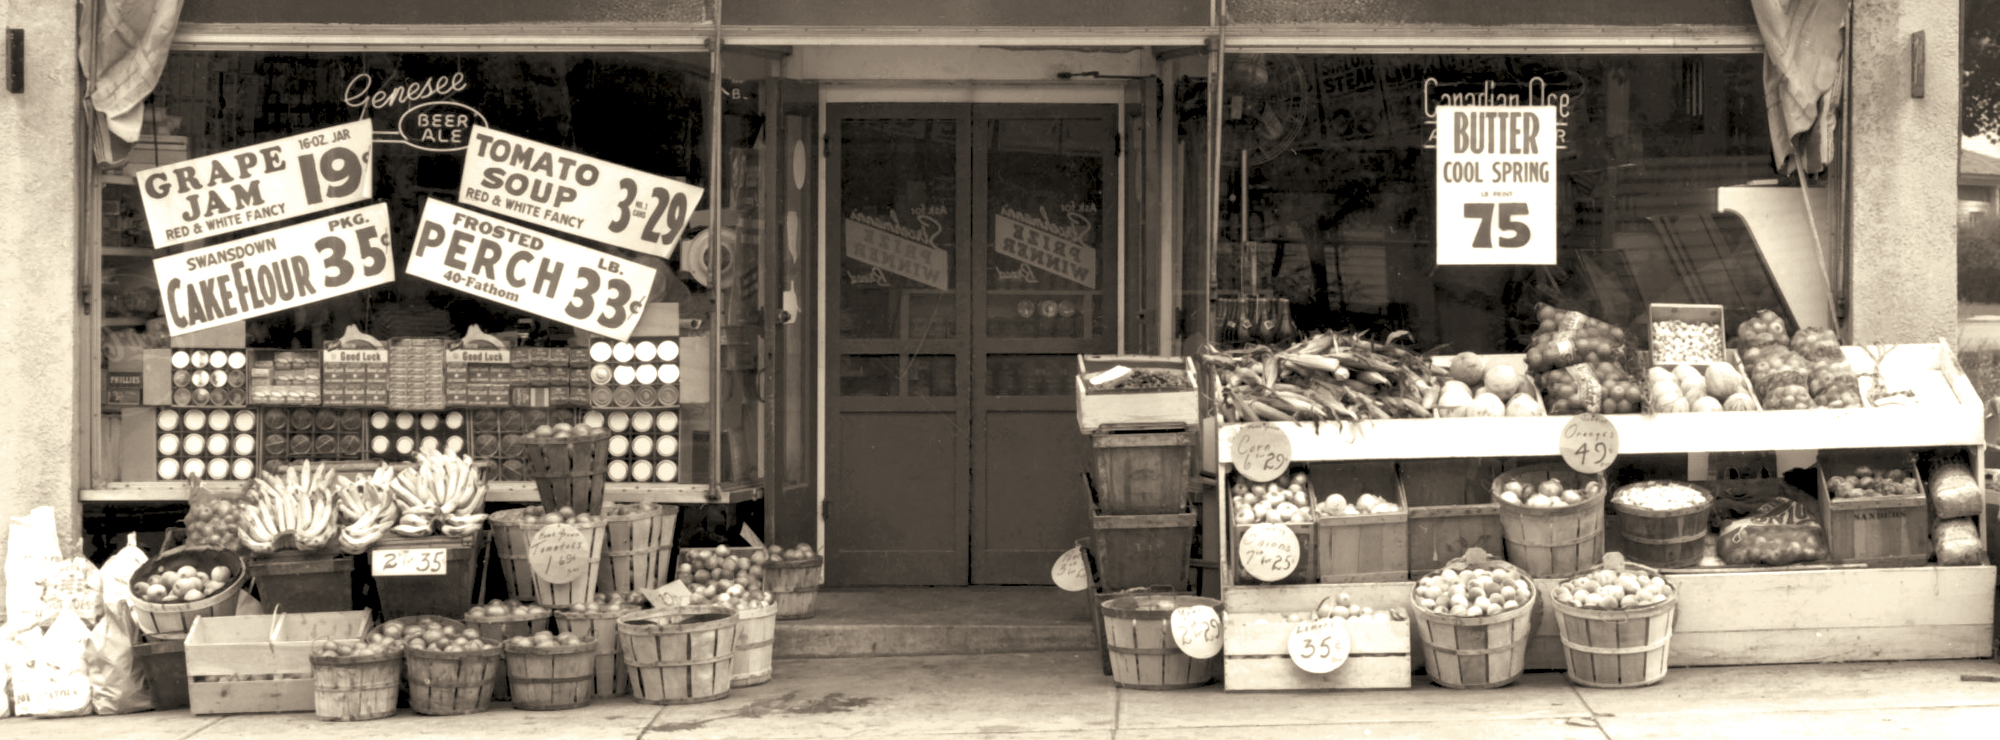 Black and white sepia tone photo showing a produce storefront.